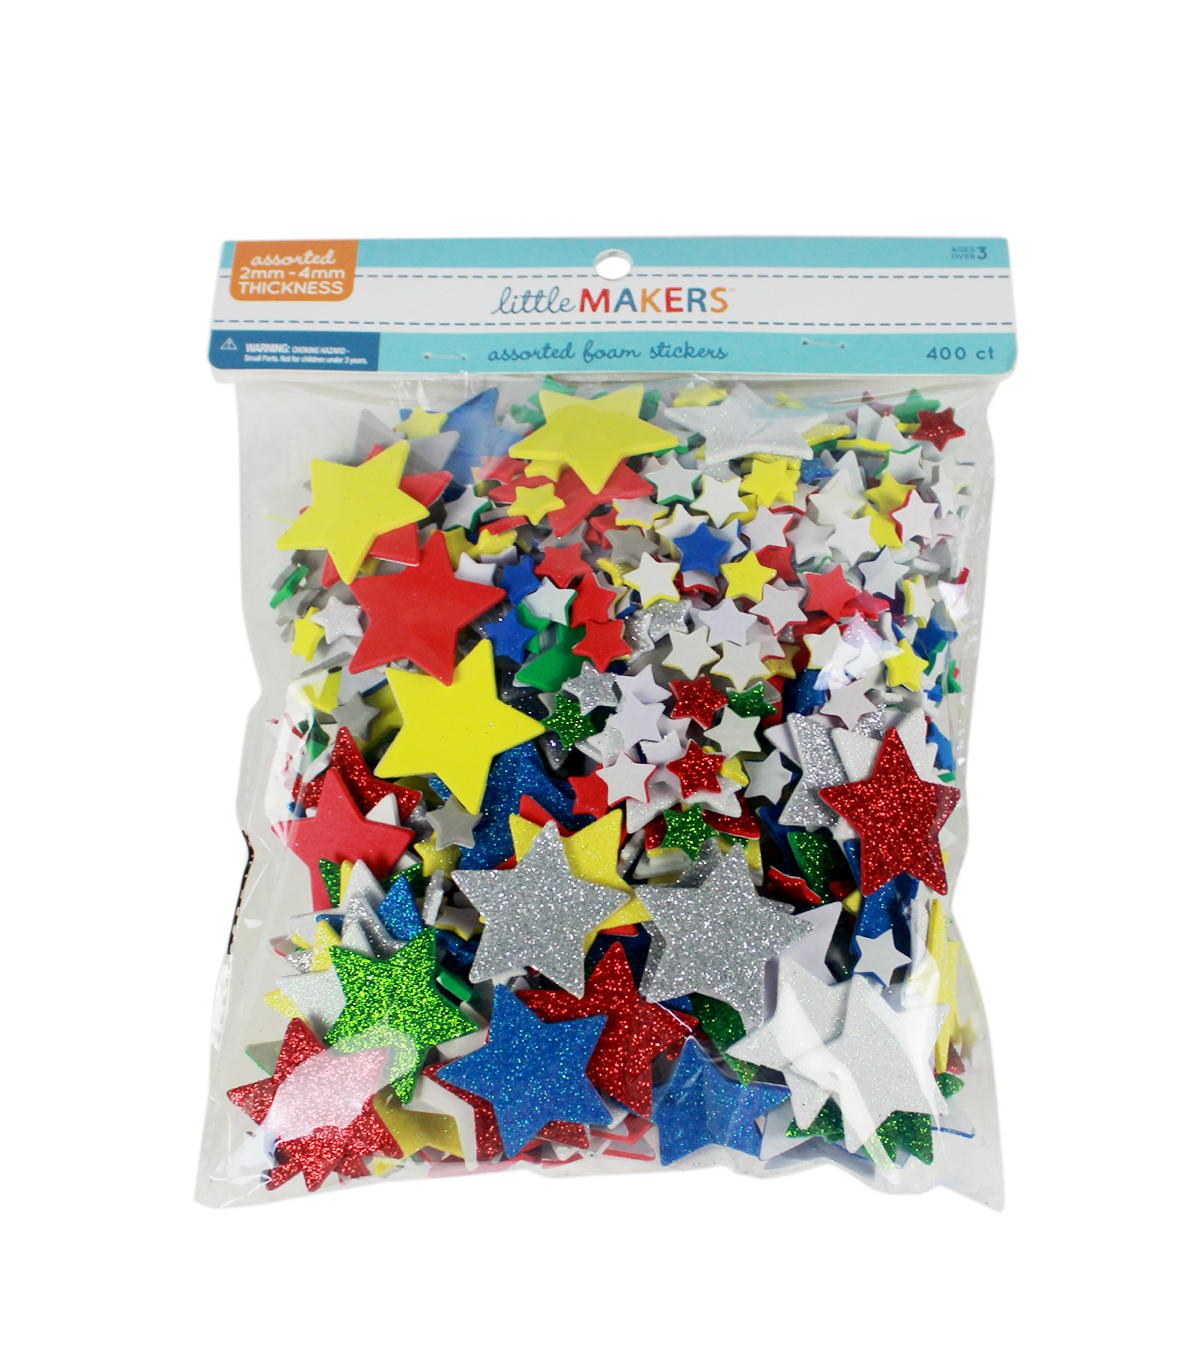 Little Makers Soild And Glitter Foam-Stars